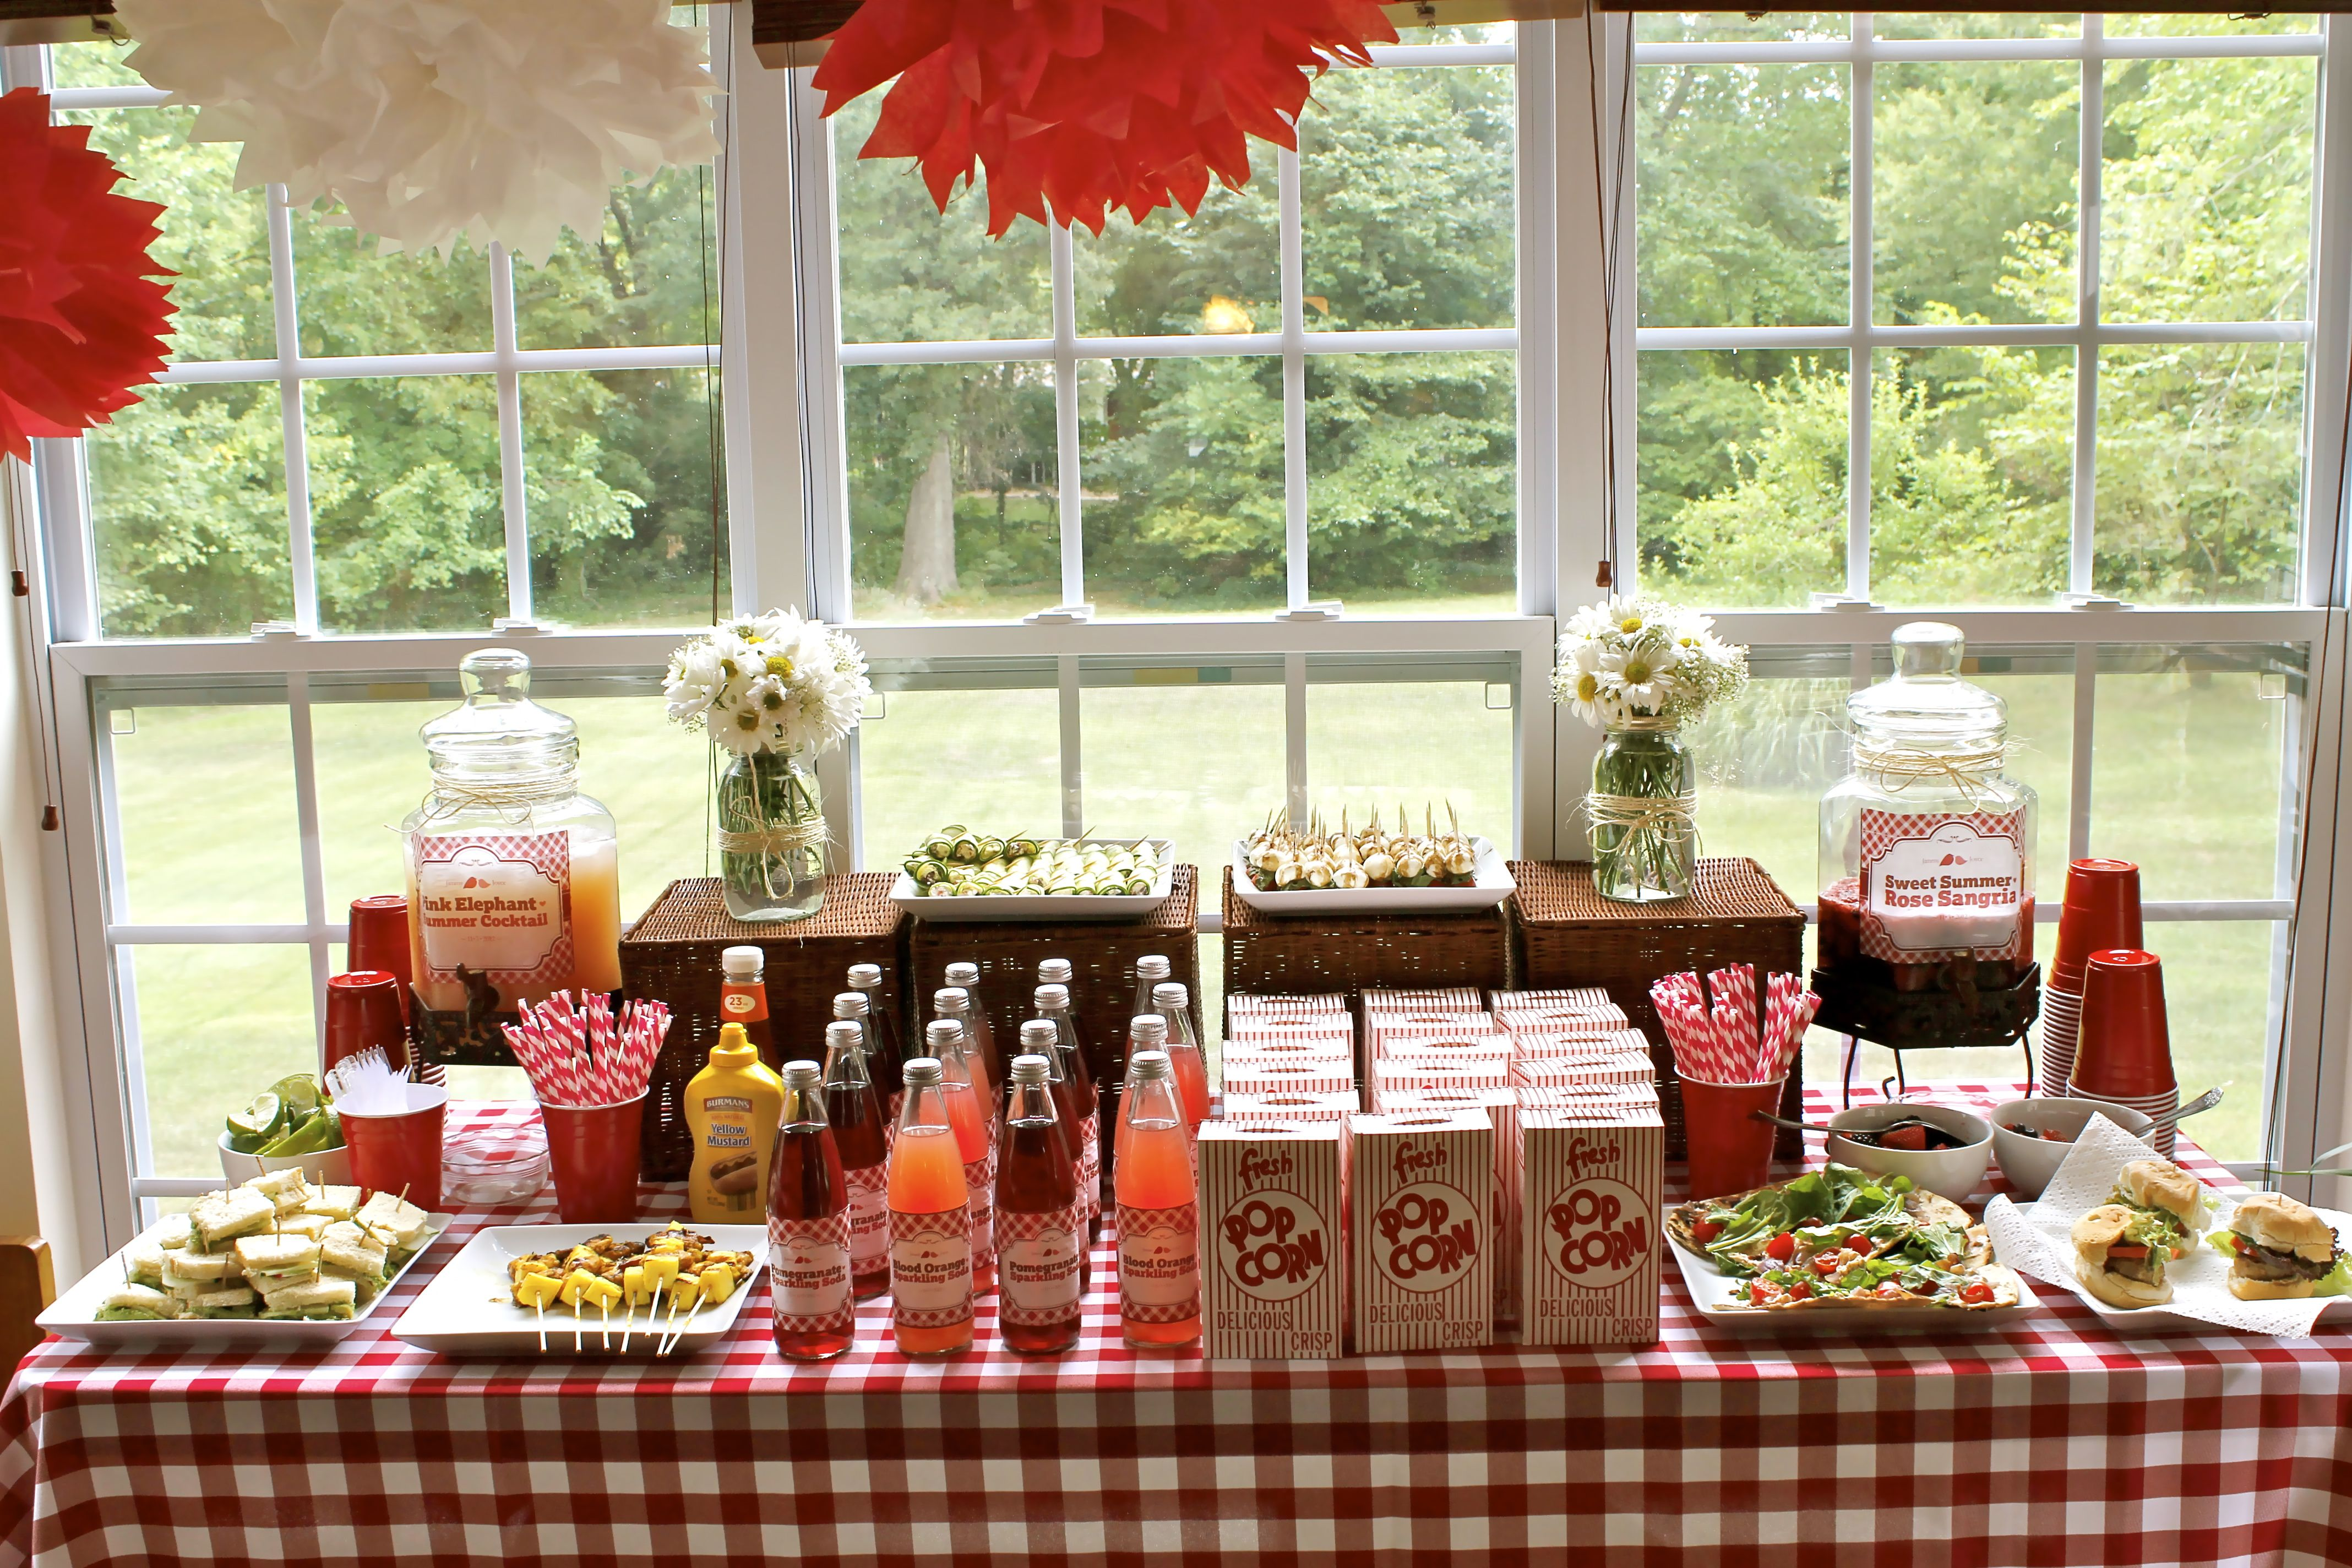 Picnic Themed Decorations Bridal Shower Country Theme Table Layout Bridal Shower